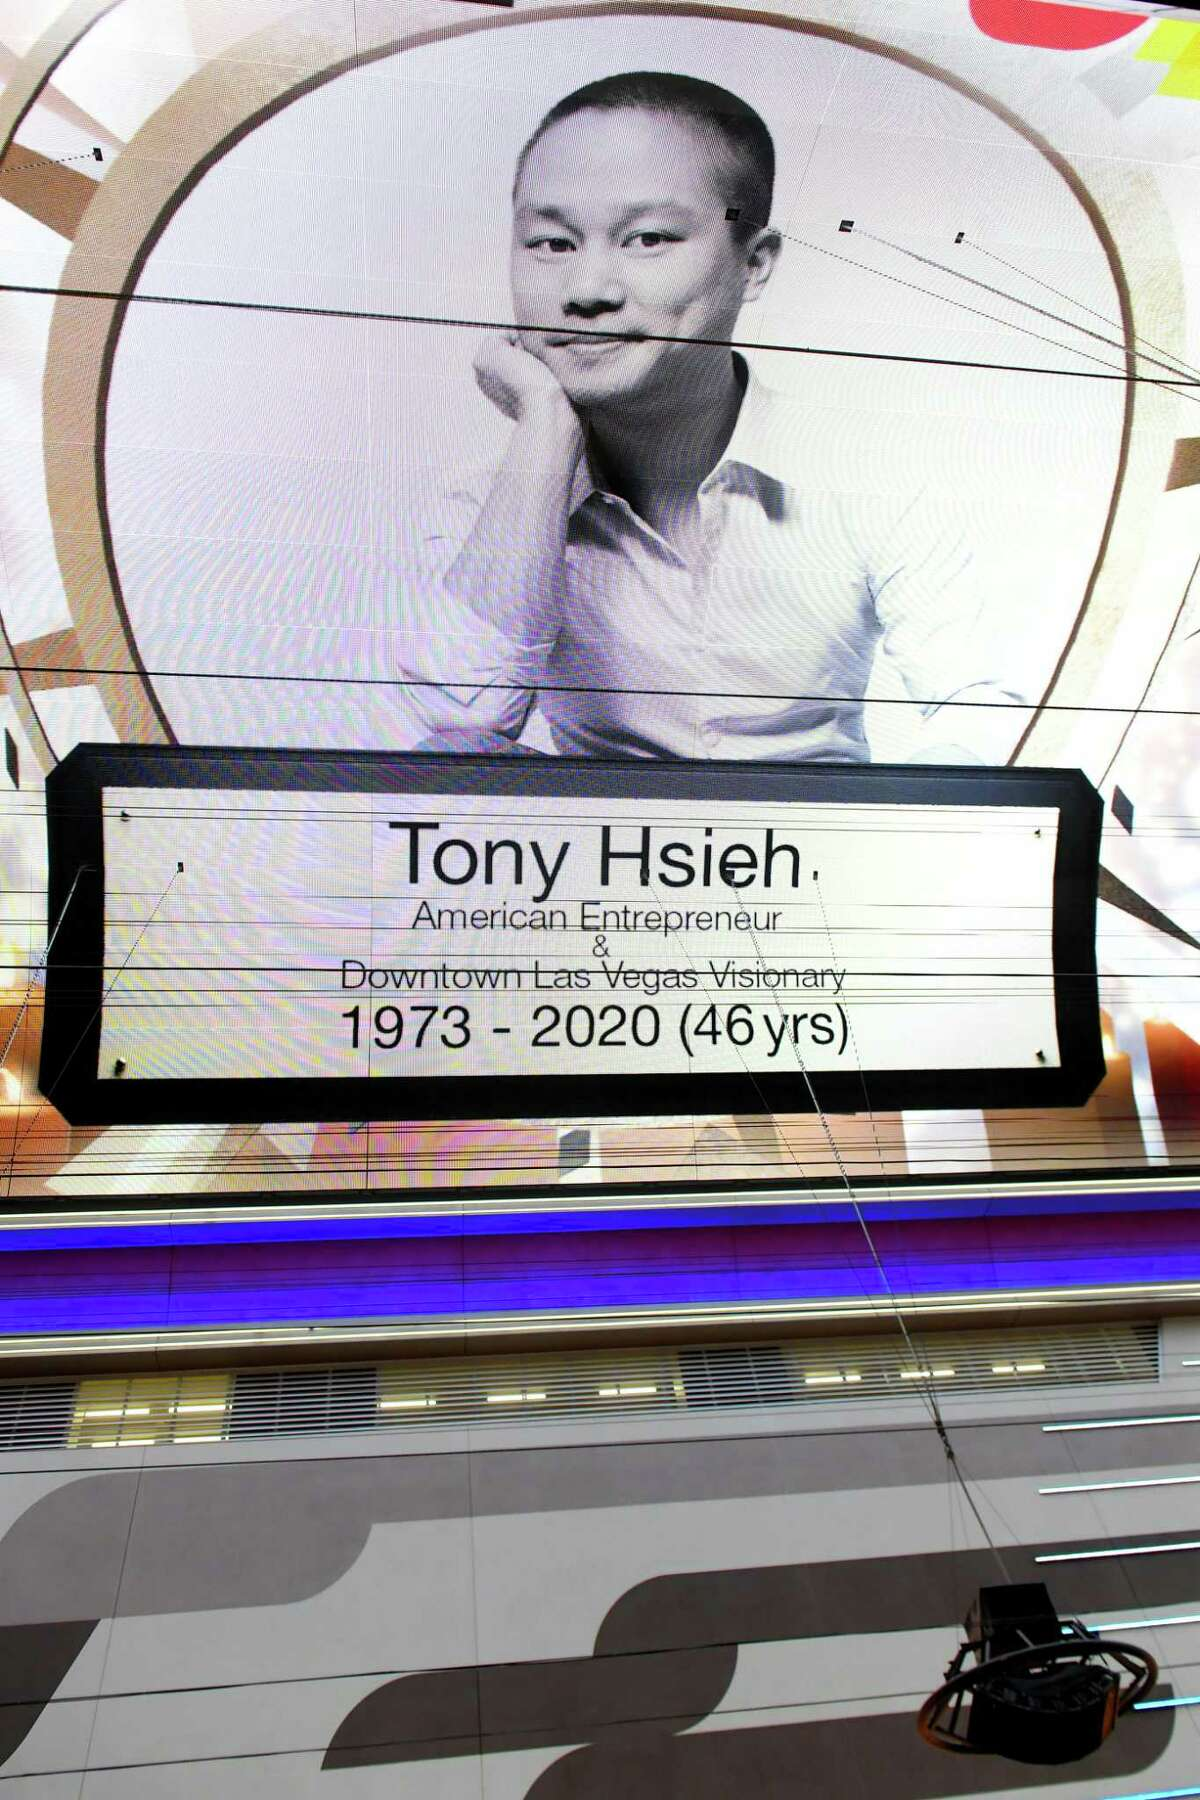 A tribute to tech entrepreneur Tony Hsieh is displayed on the Fremont Street Experience attraction's Viva Vision screen on November 28, 2020 in Las Vegas, Nevada.